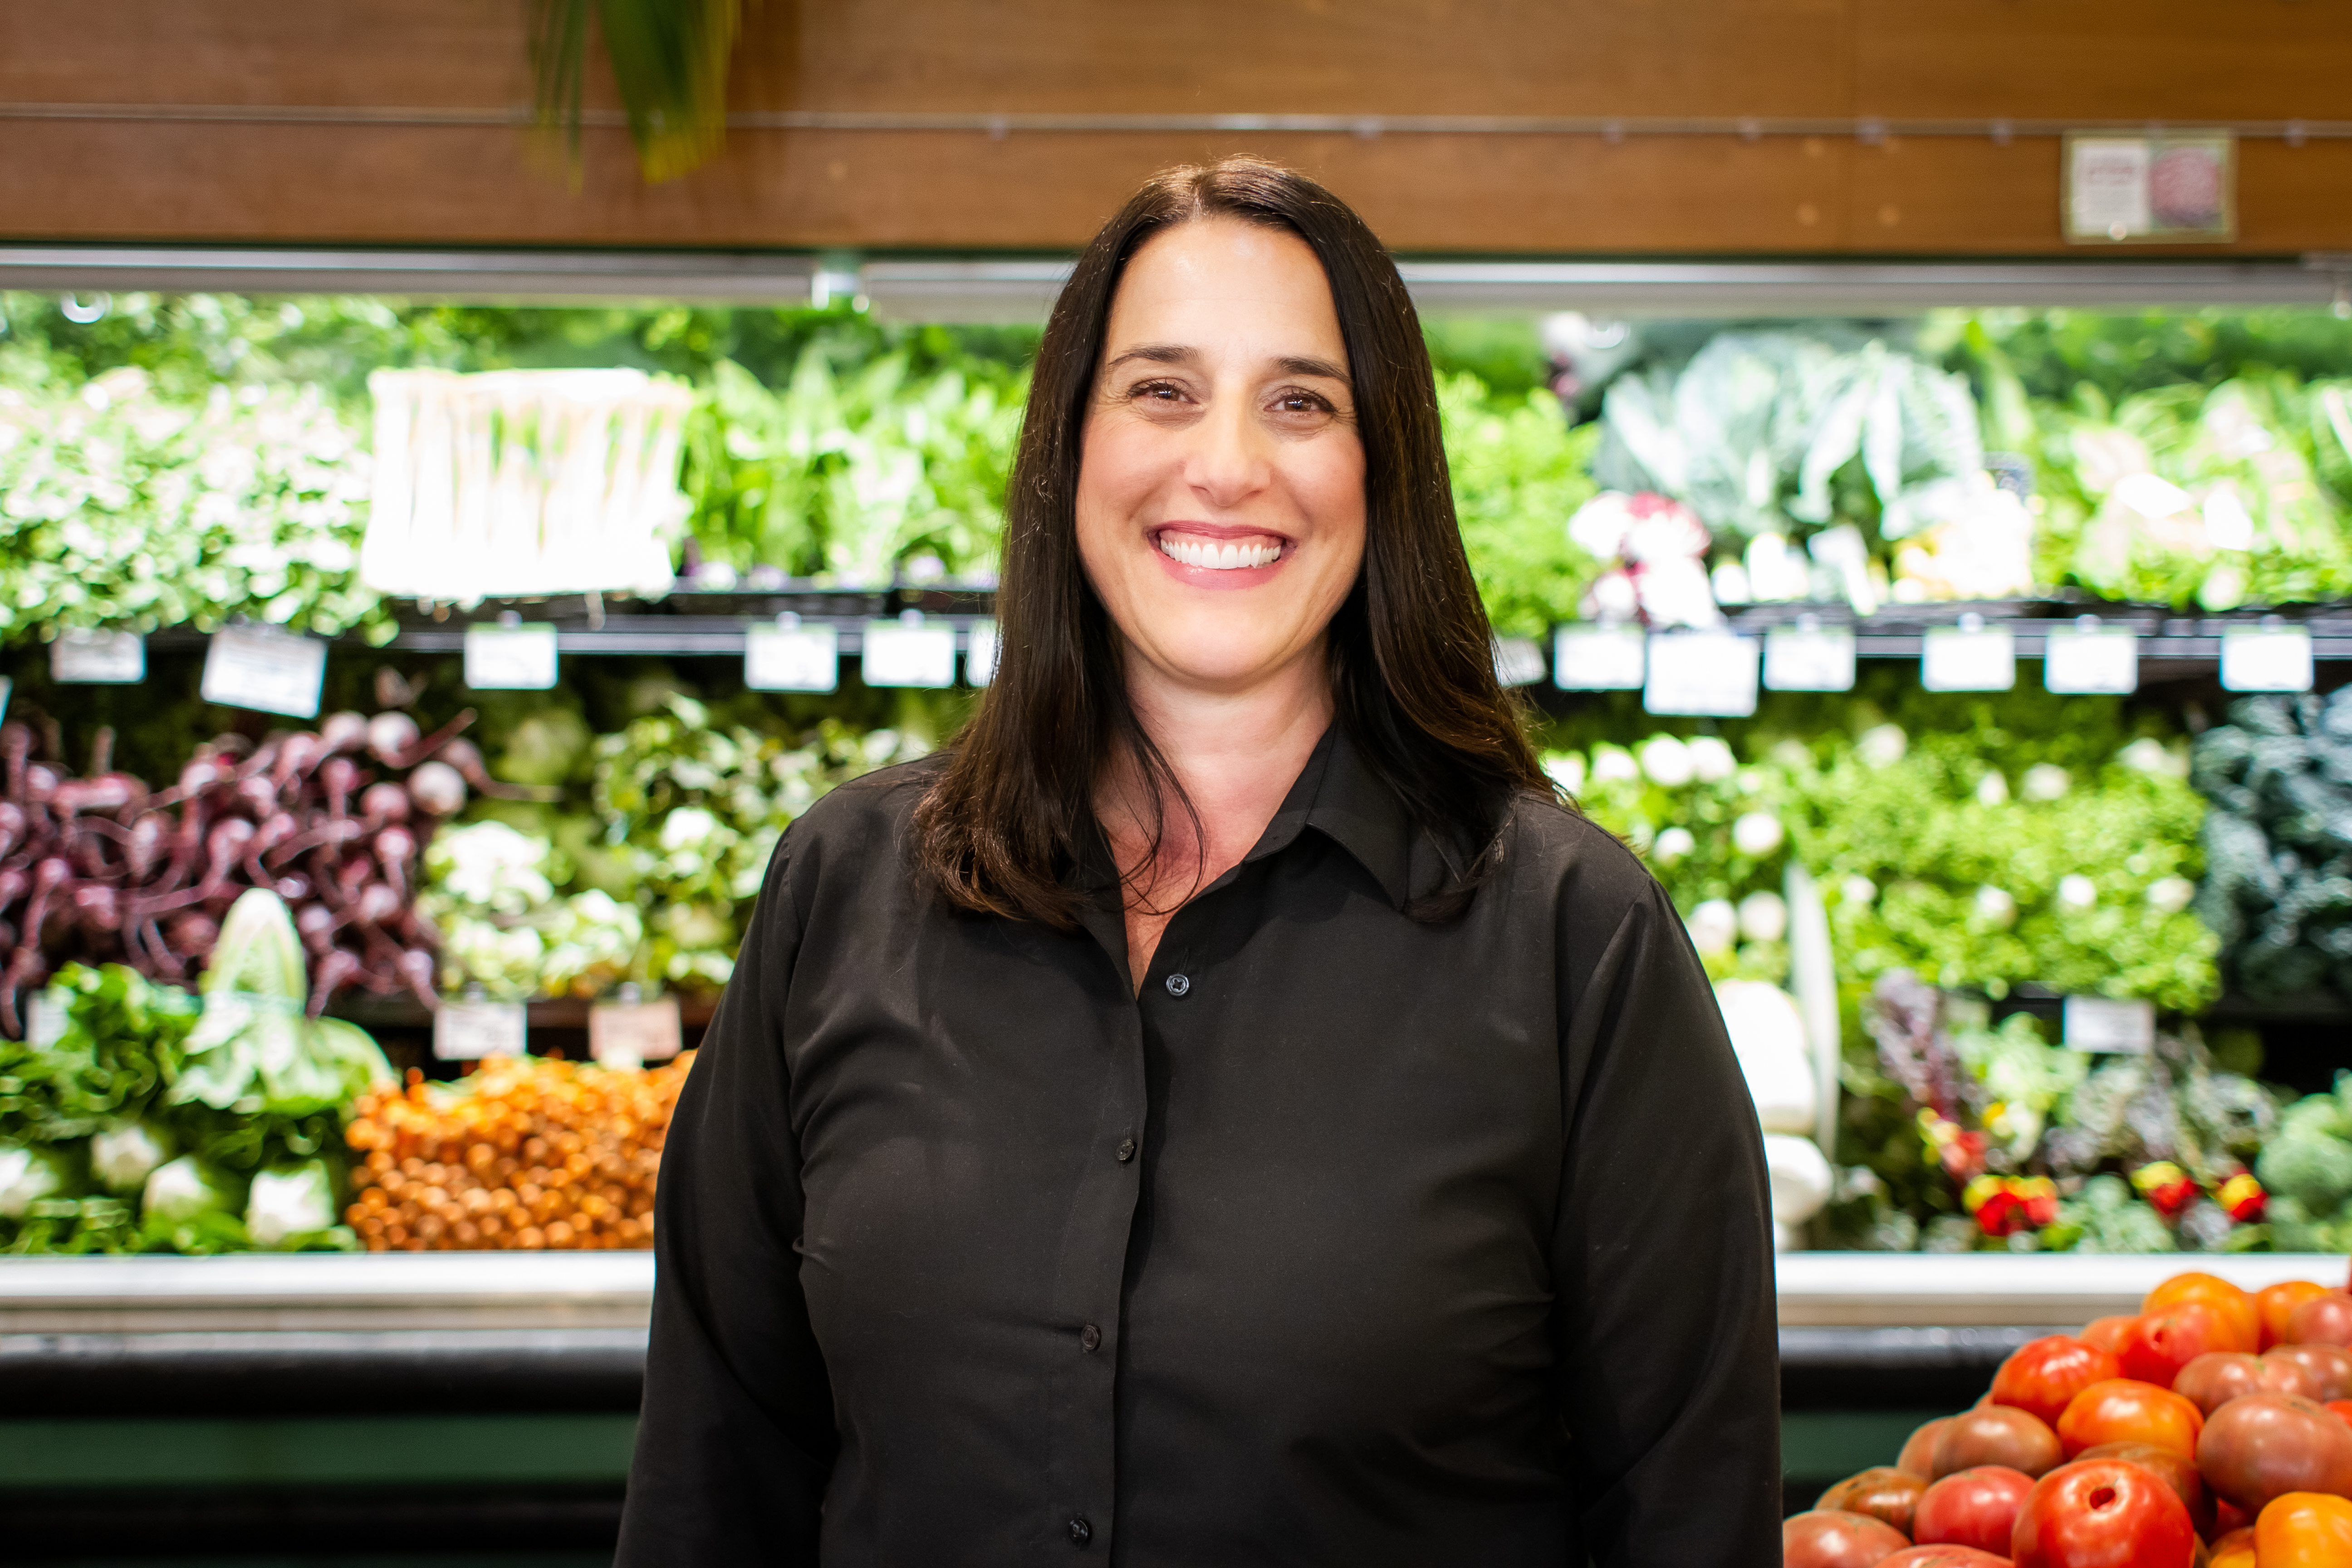 New Leaf Community Markets, Capitola location store manager, Stephanie Workman